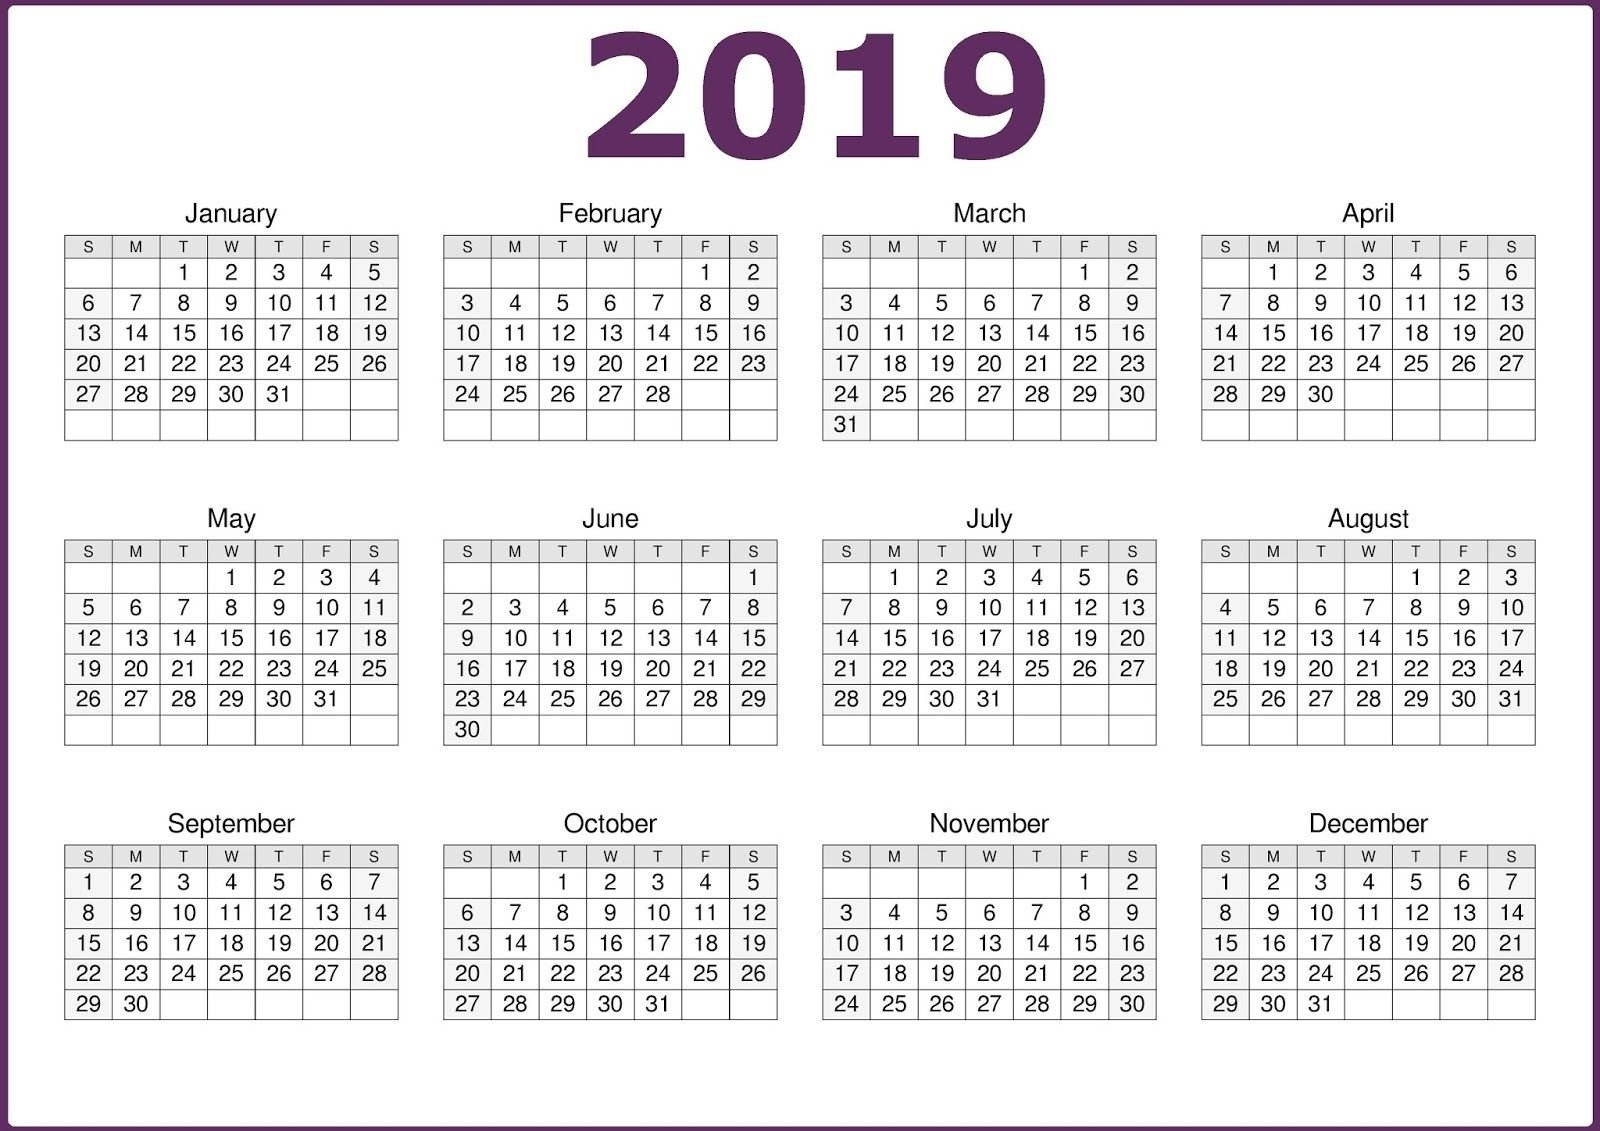 2019 One Page 12 Months Calendar | 2019 Calendars | Pinterest Calendar 2019 In One Page